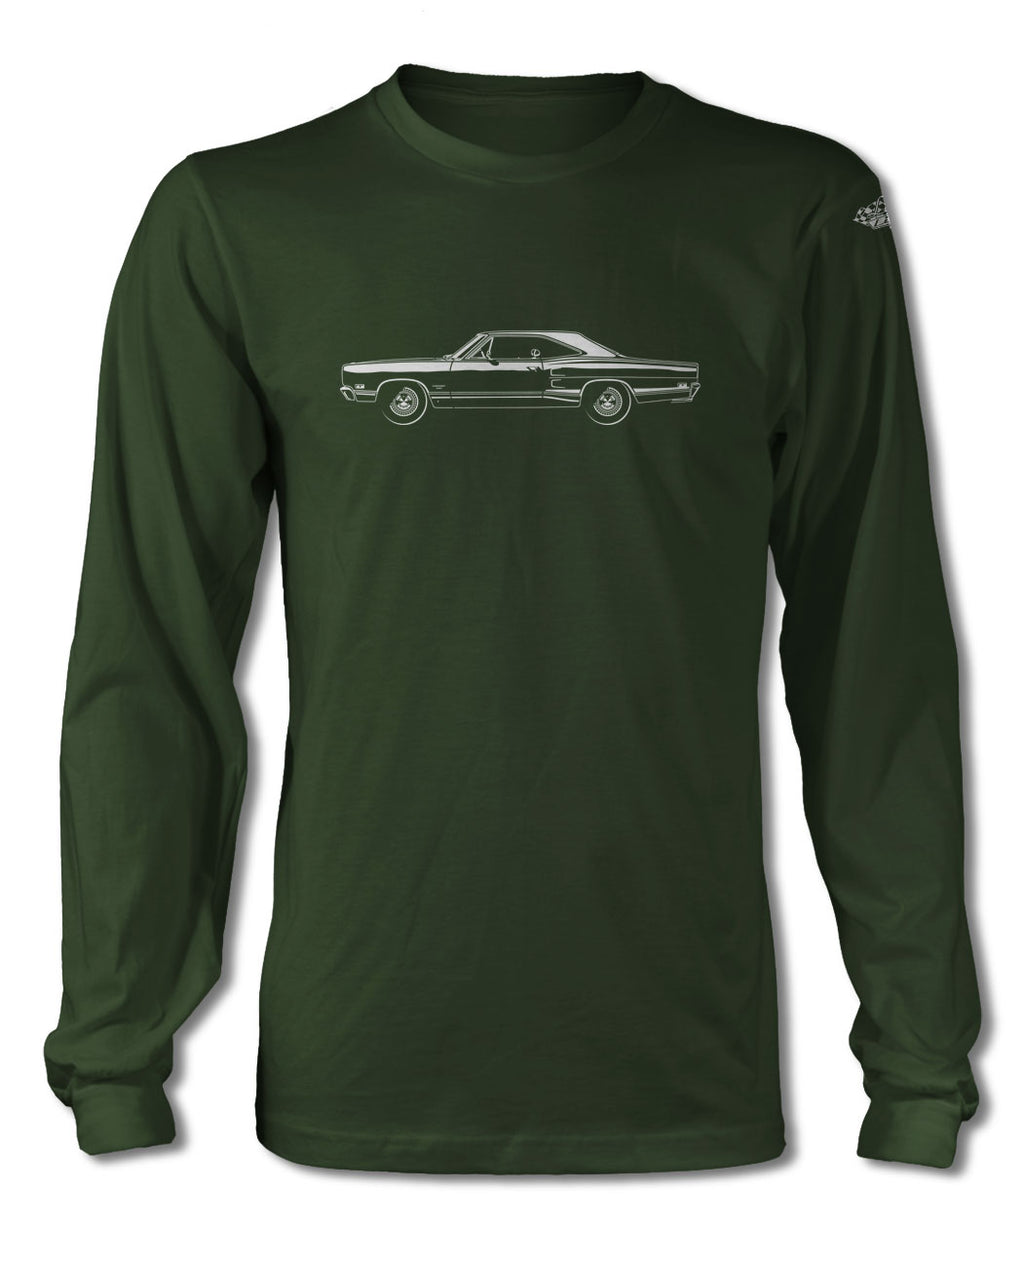 1969 Dodge Coronet 440 Coupe T-Shirt - Long Sleeves - Side View